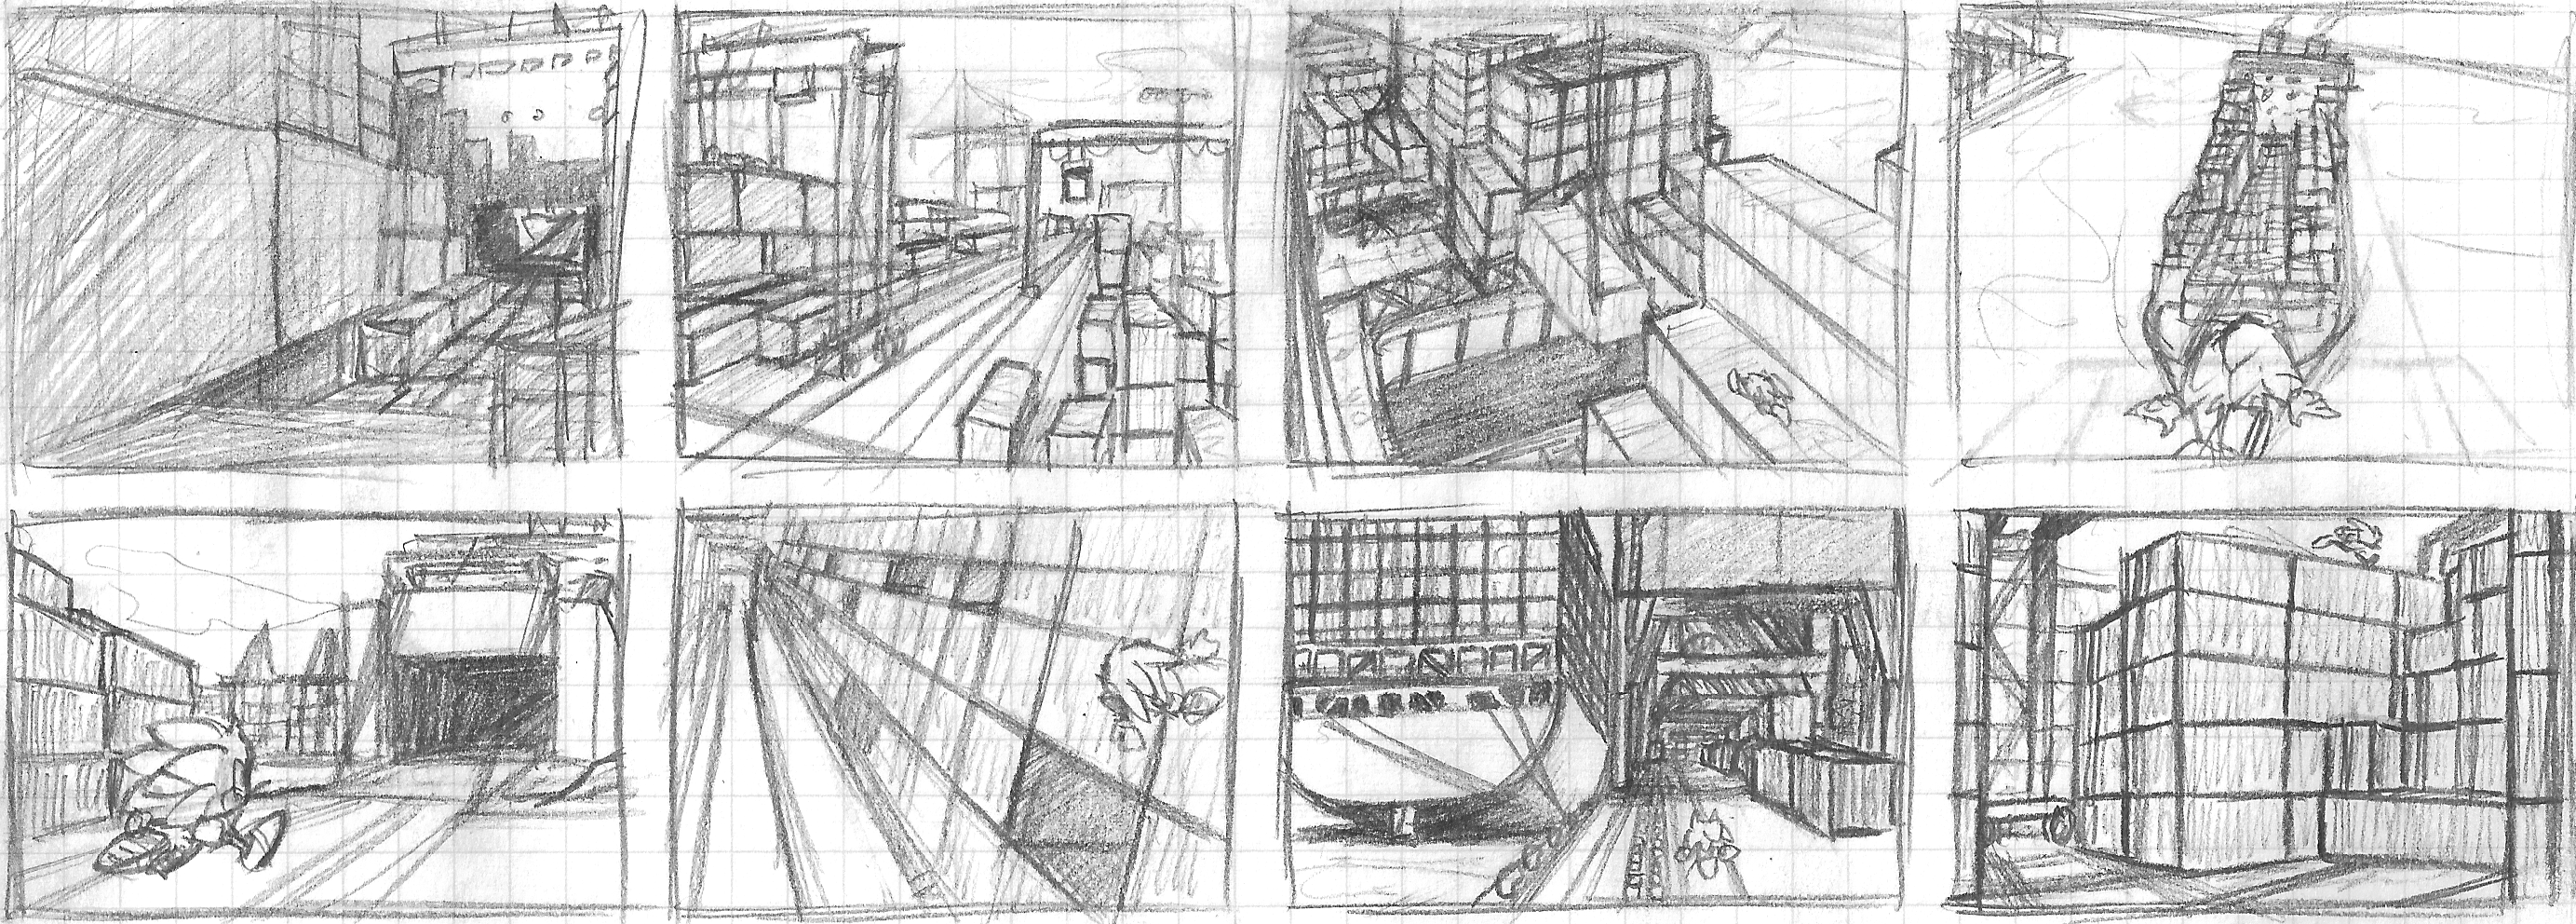 Havok Harbor Zone - Locale Sketches